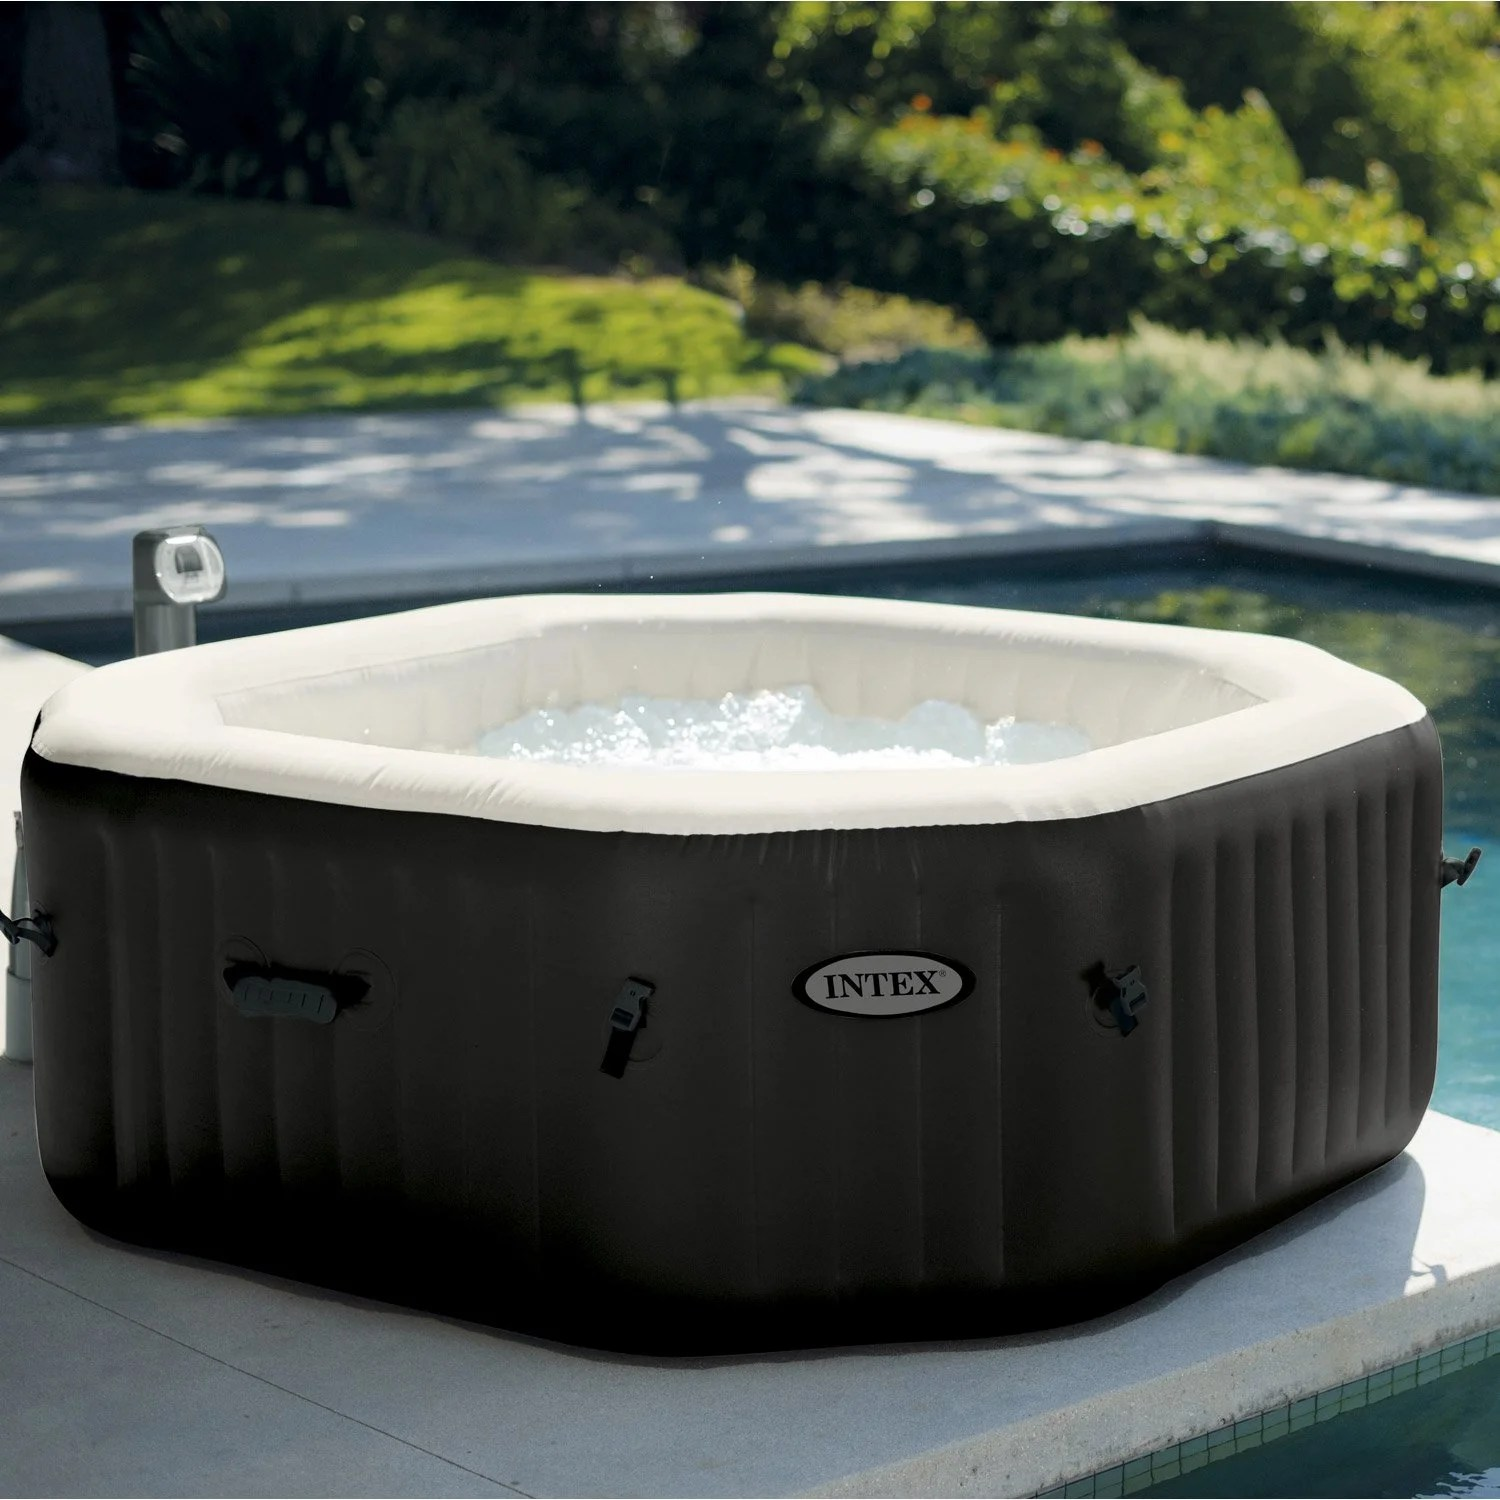 Prix Jacuzzi Exterieur Gonflable Spa Gonflable Intex Pure Spa Jets Bulles Octogonale 4 Places Assises